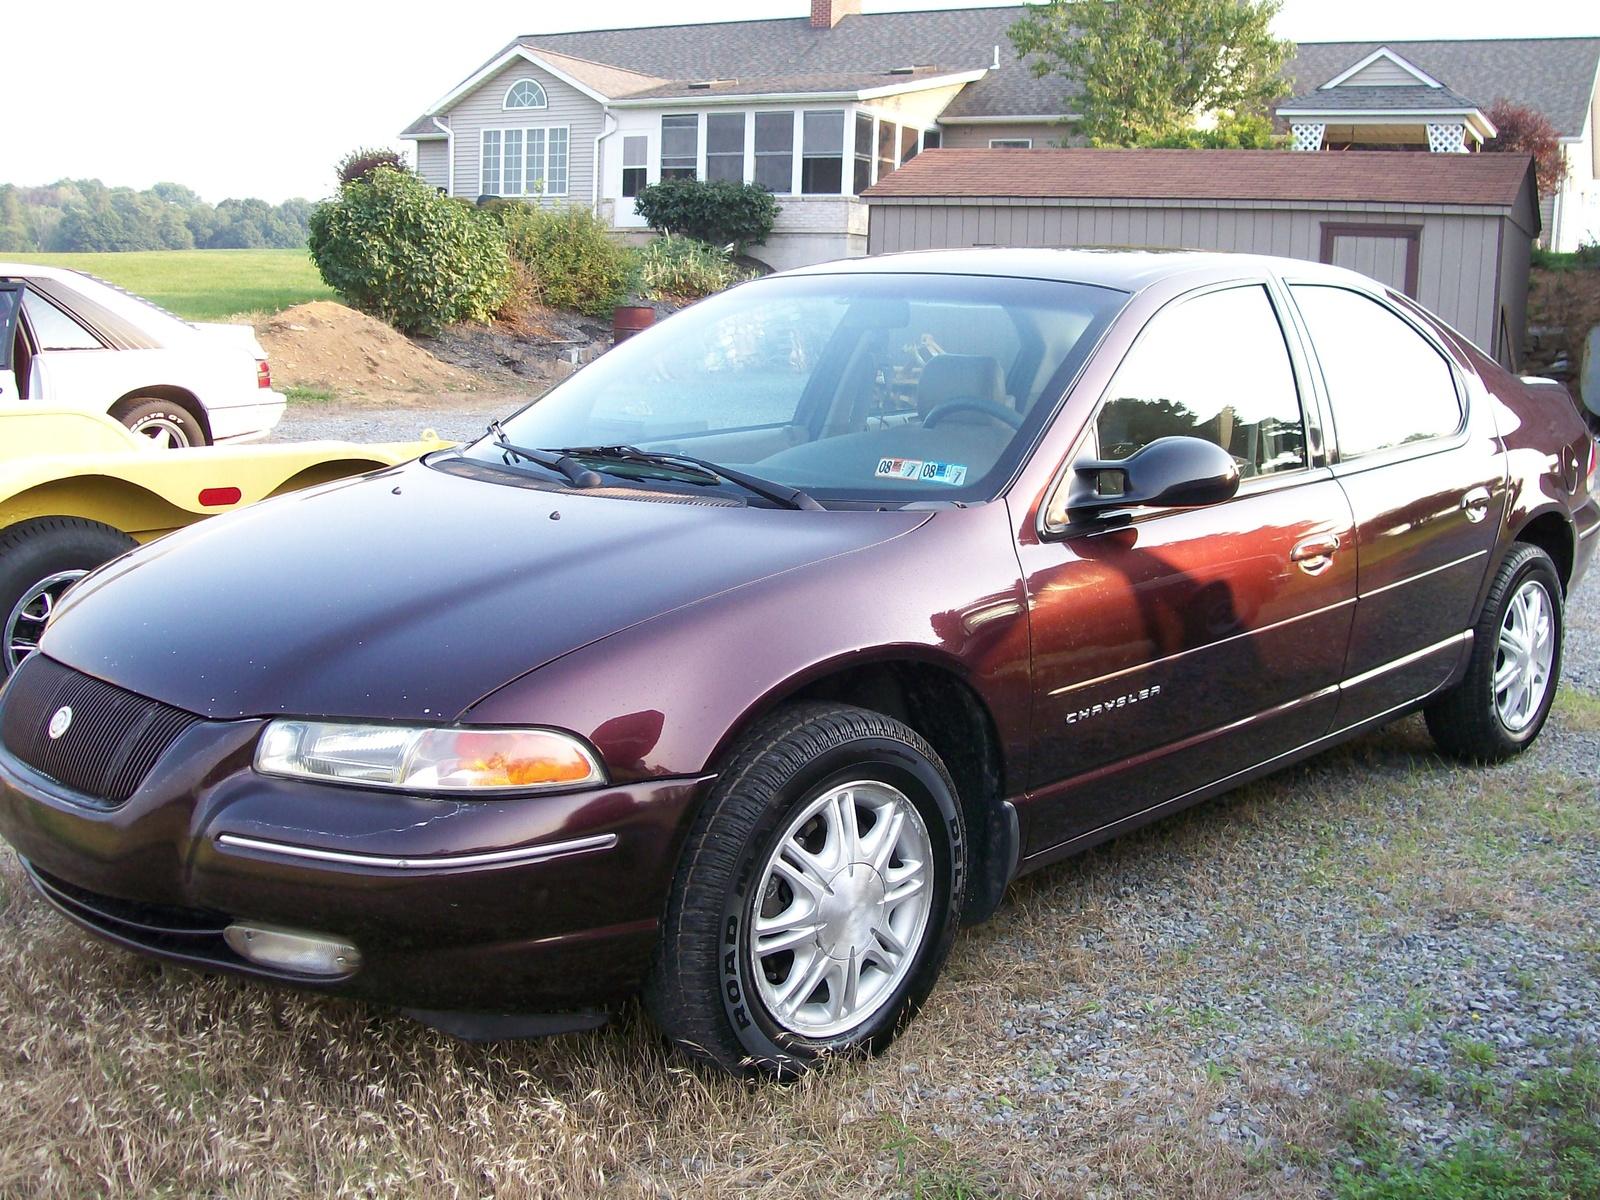 1998 Chrysler Cirrus #11